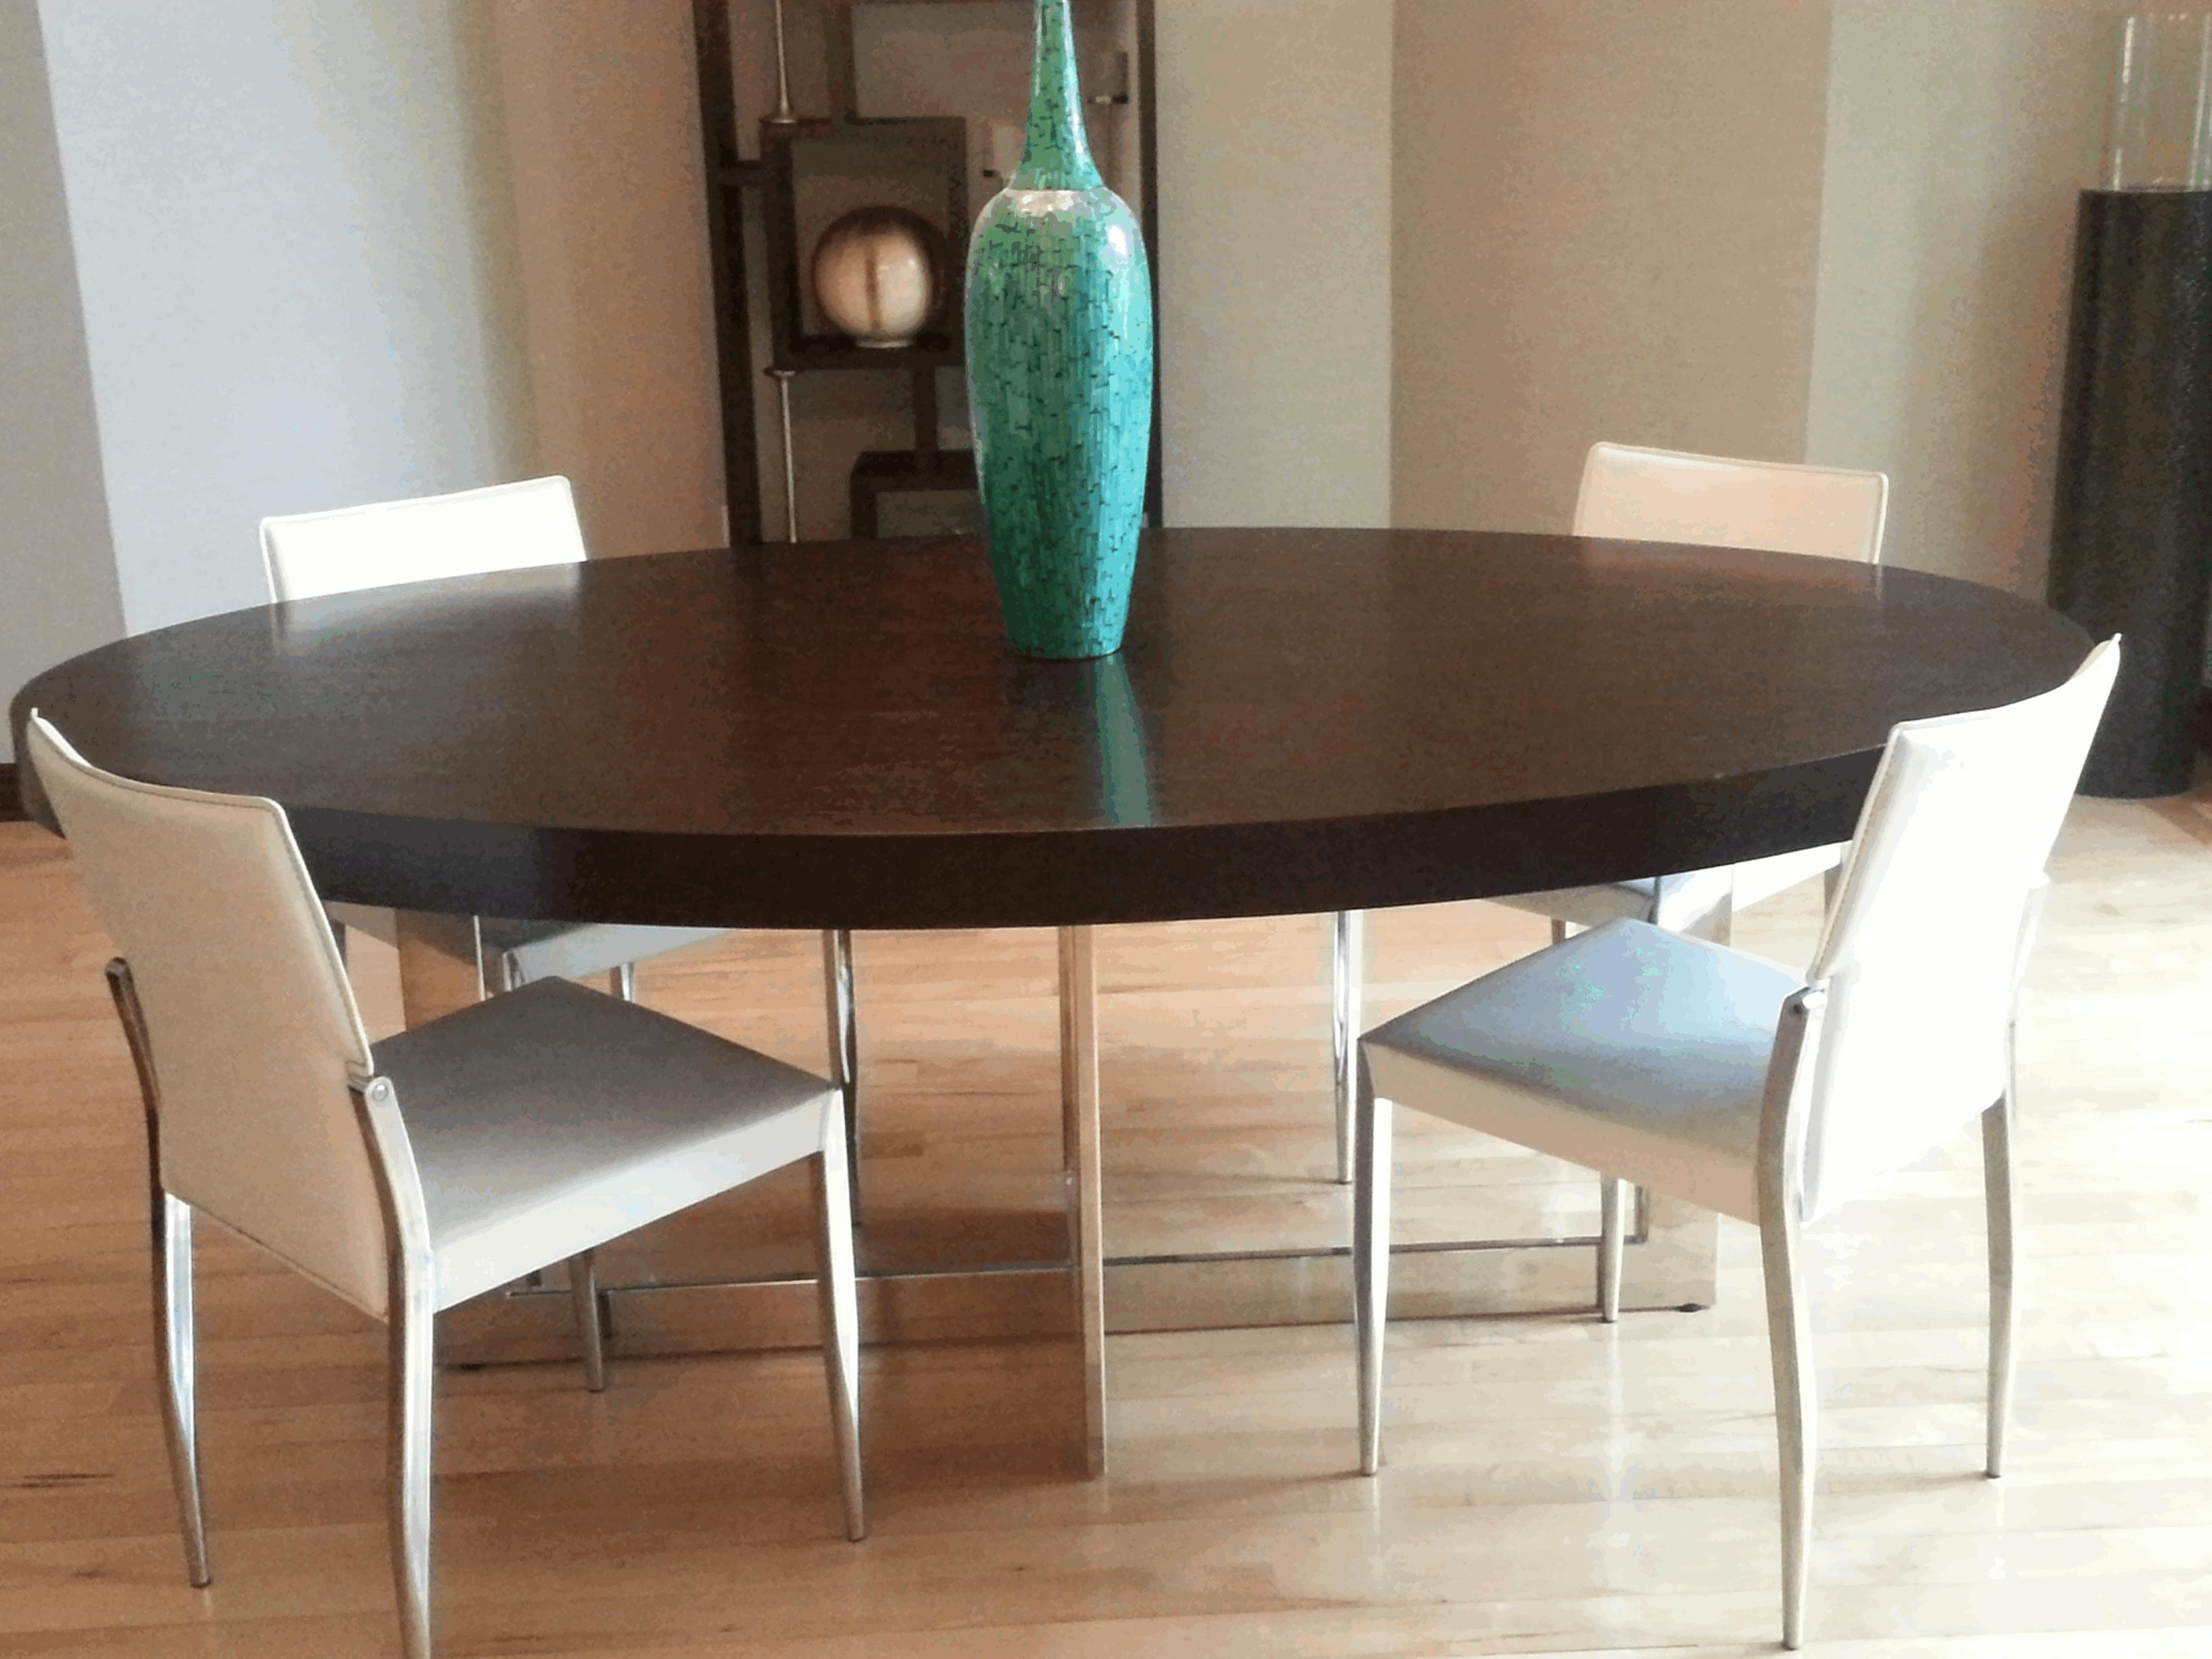 Contemporary Wood Dining Chairs Large Brown Varnished Wooden Display Intended For Best And Newest Batik Coffee Tables (View 13 of 20)